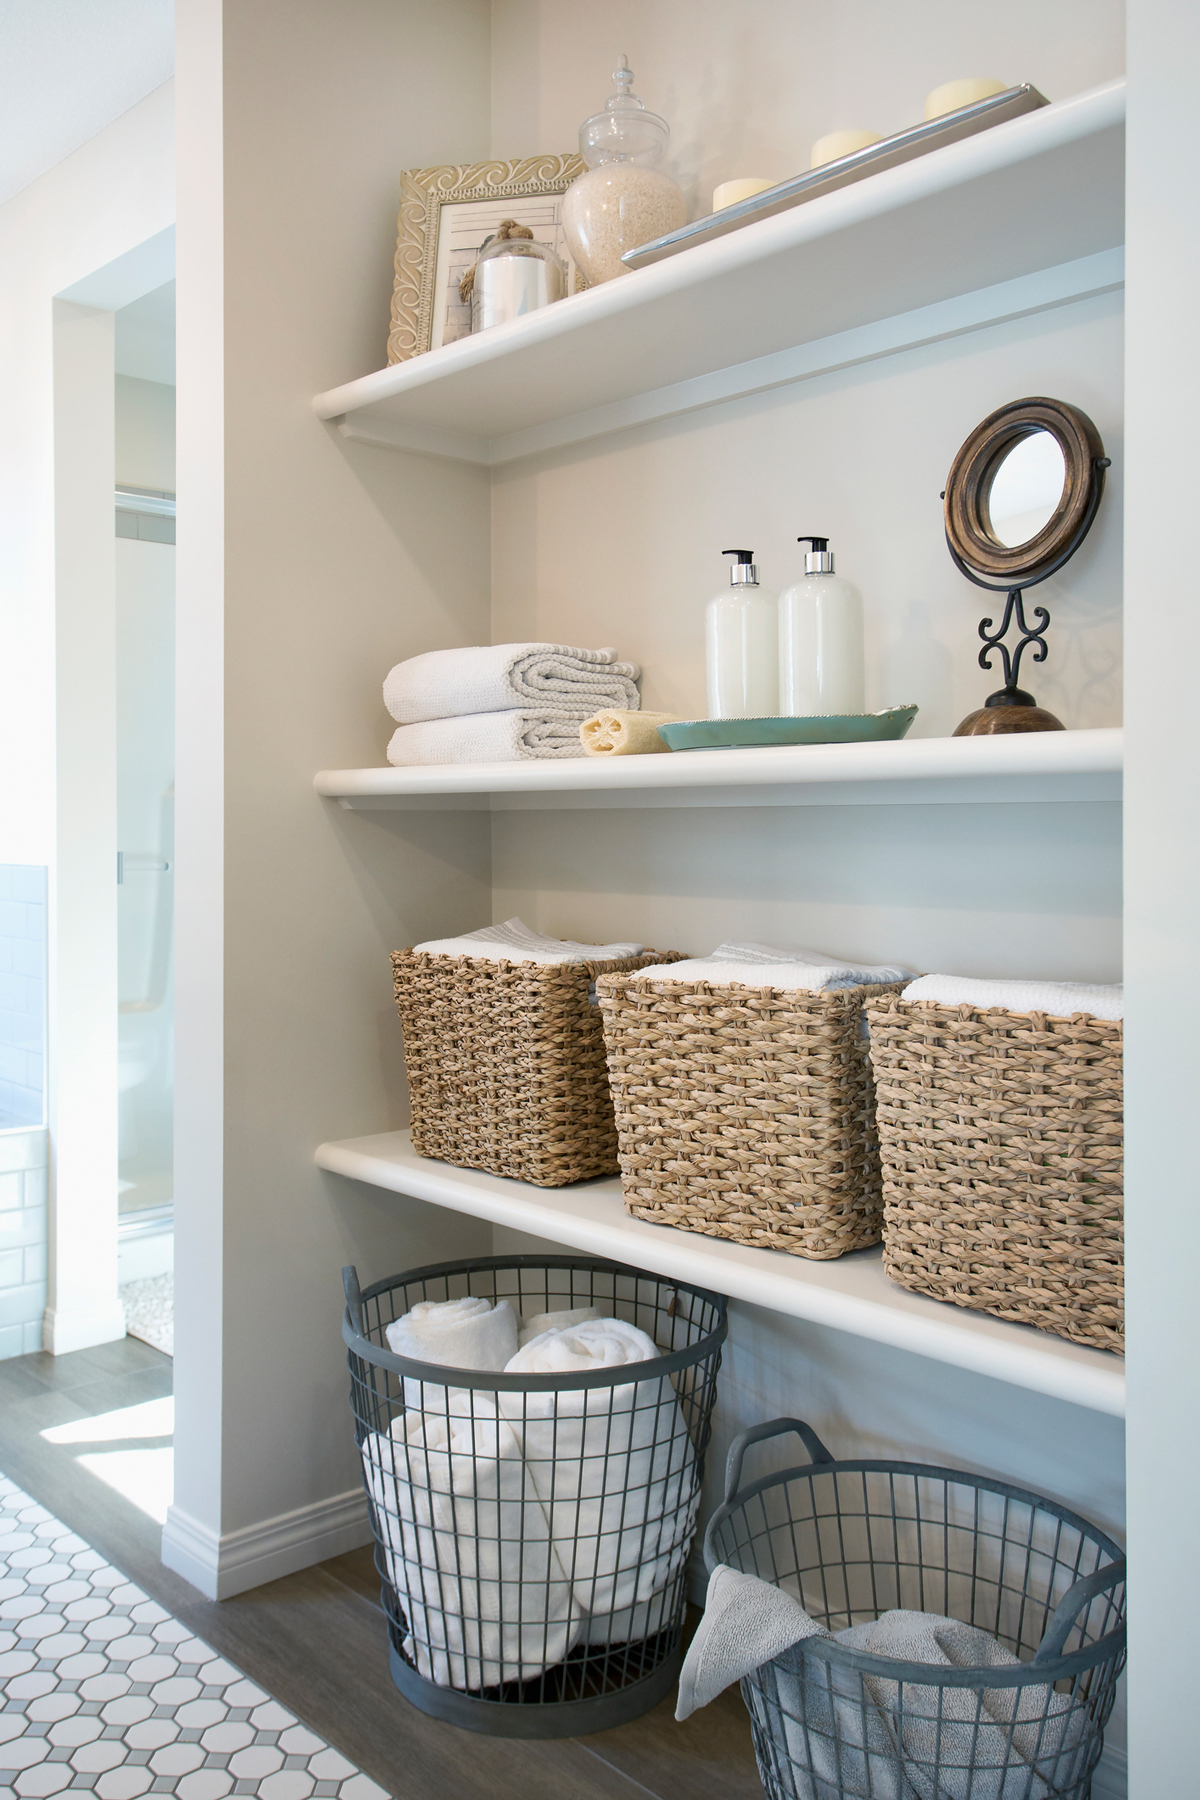 Should You Store Bath Towels in the Bathroom? | Real Simple